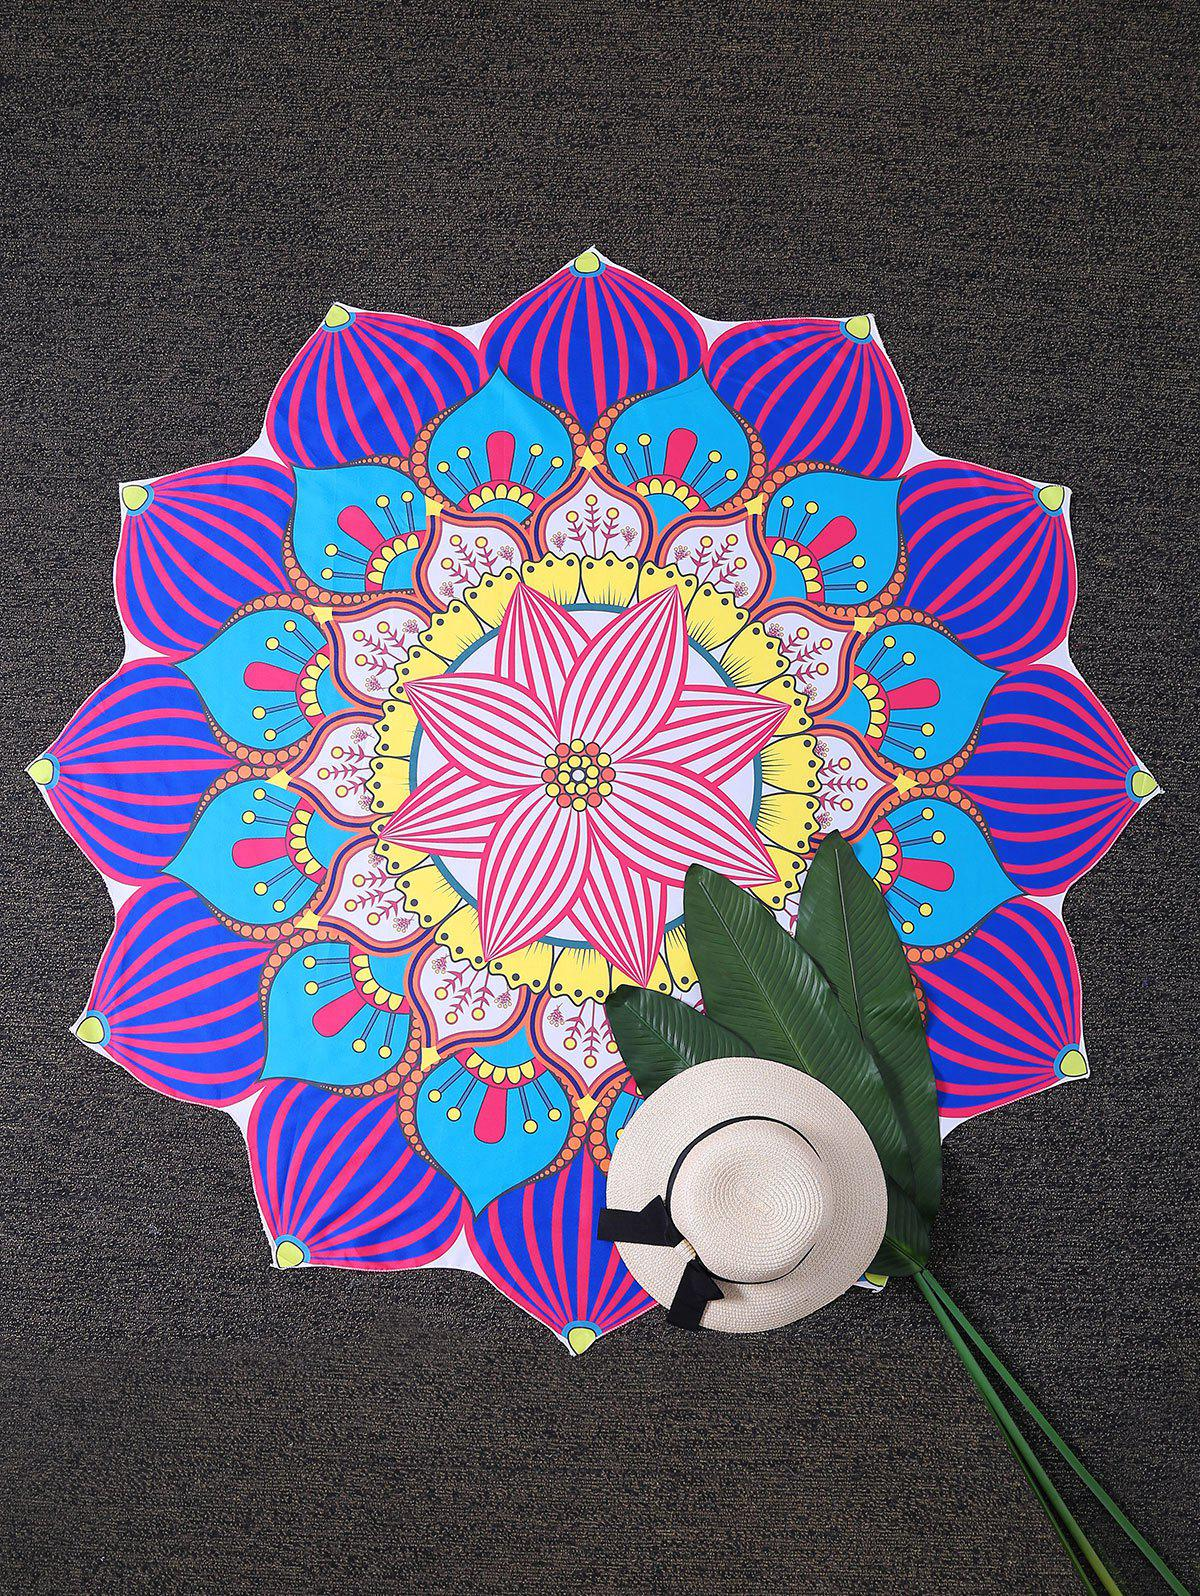 Sunbath Mandala Lotus Beach Throw Cover - multicolorcolore ONE SIZE